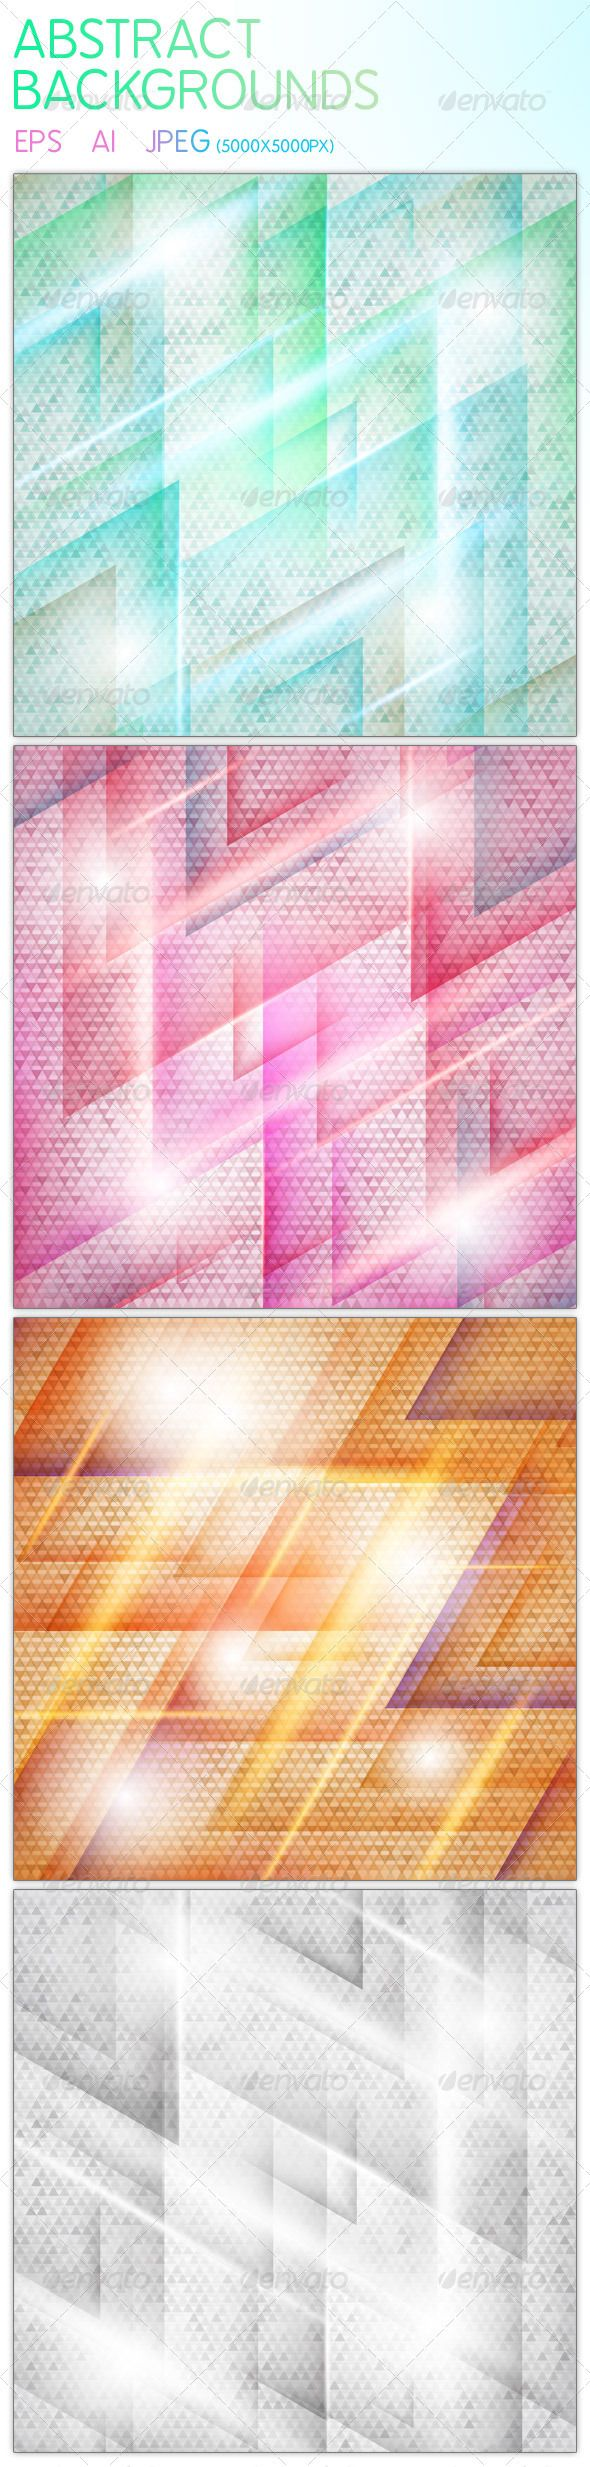 wedding card backgrounds vectors%0A   Abstract Vector Triangle Backgrounds